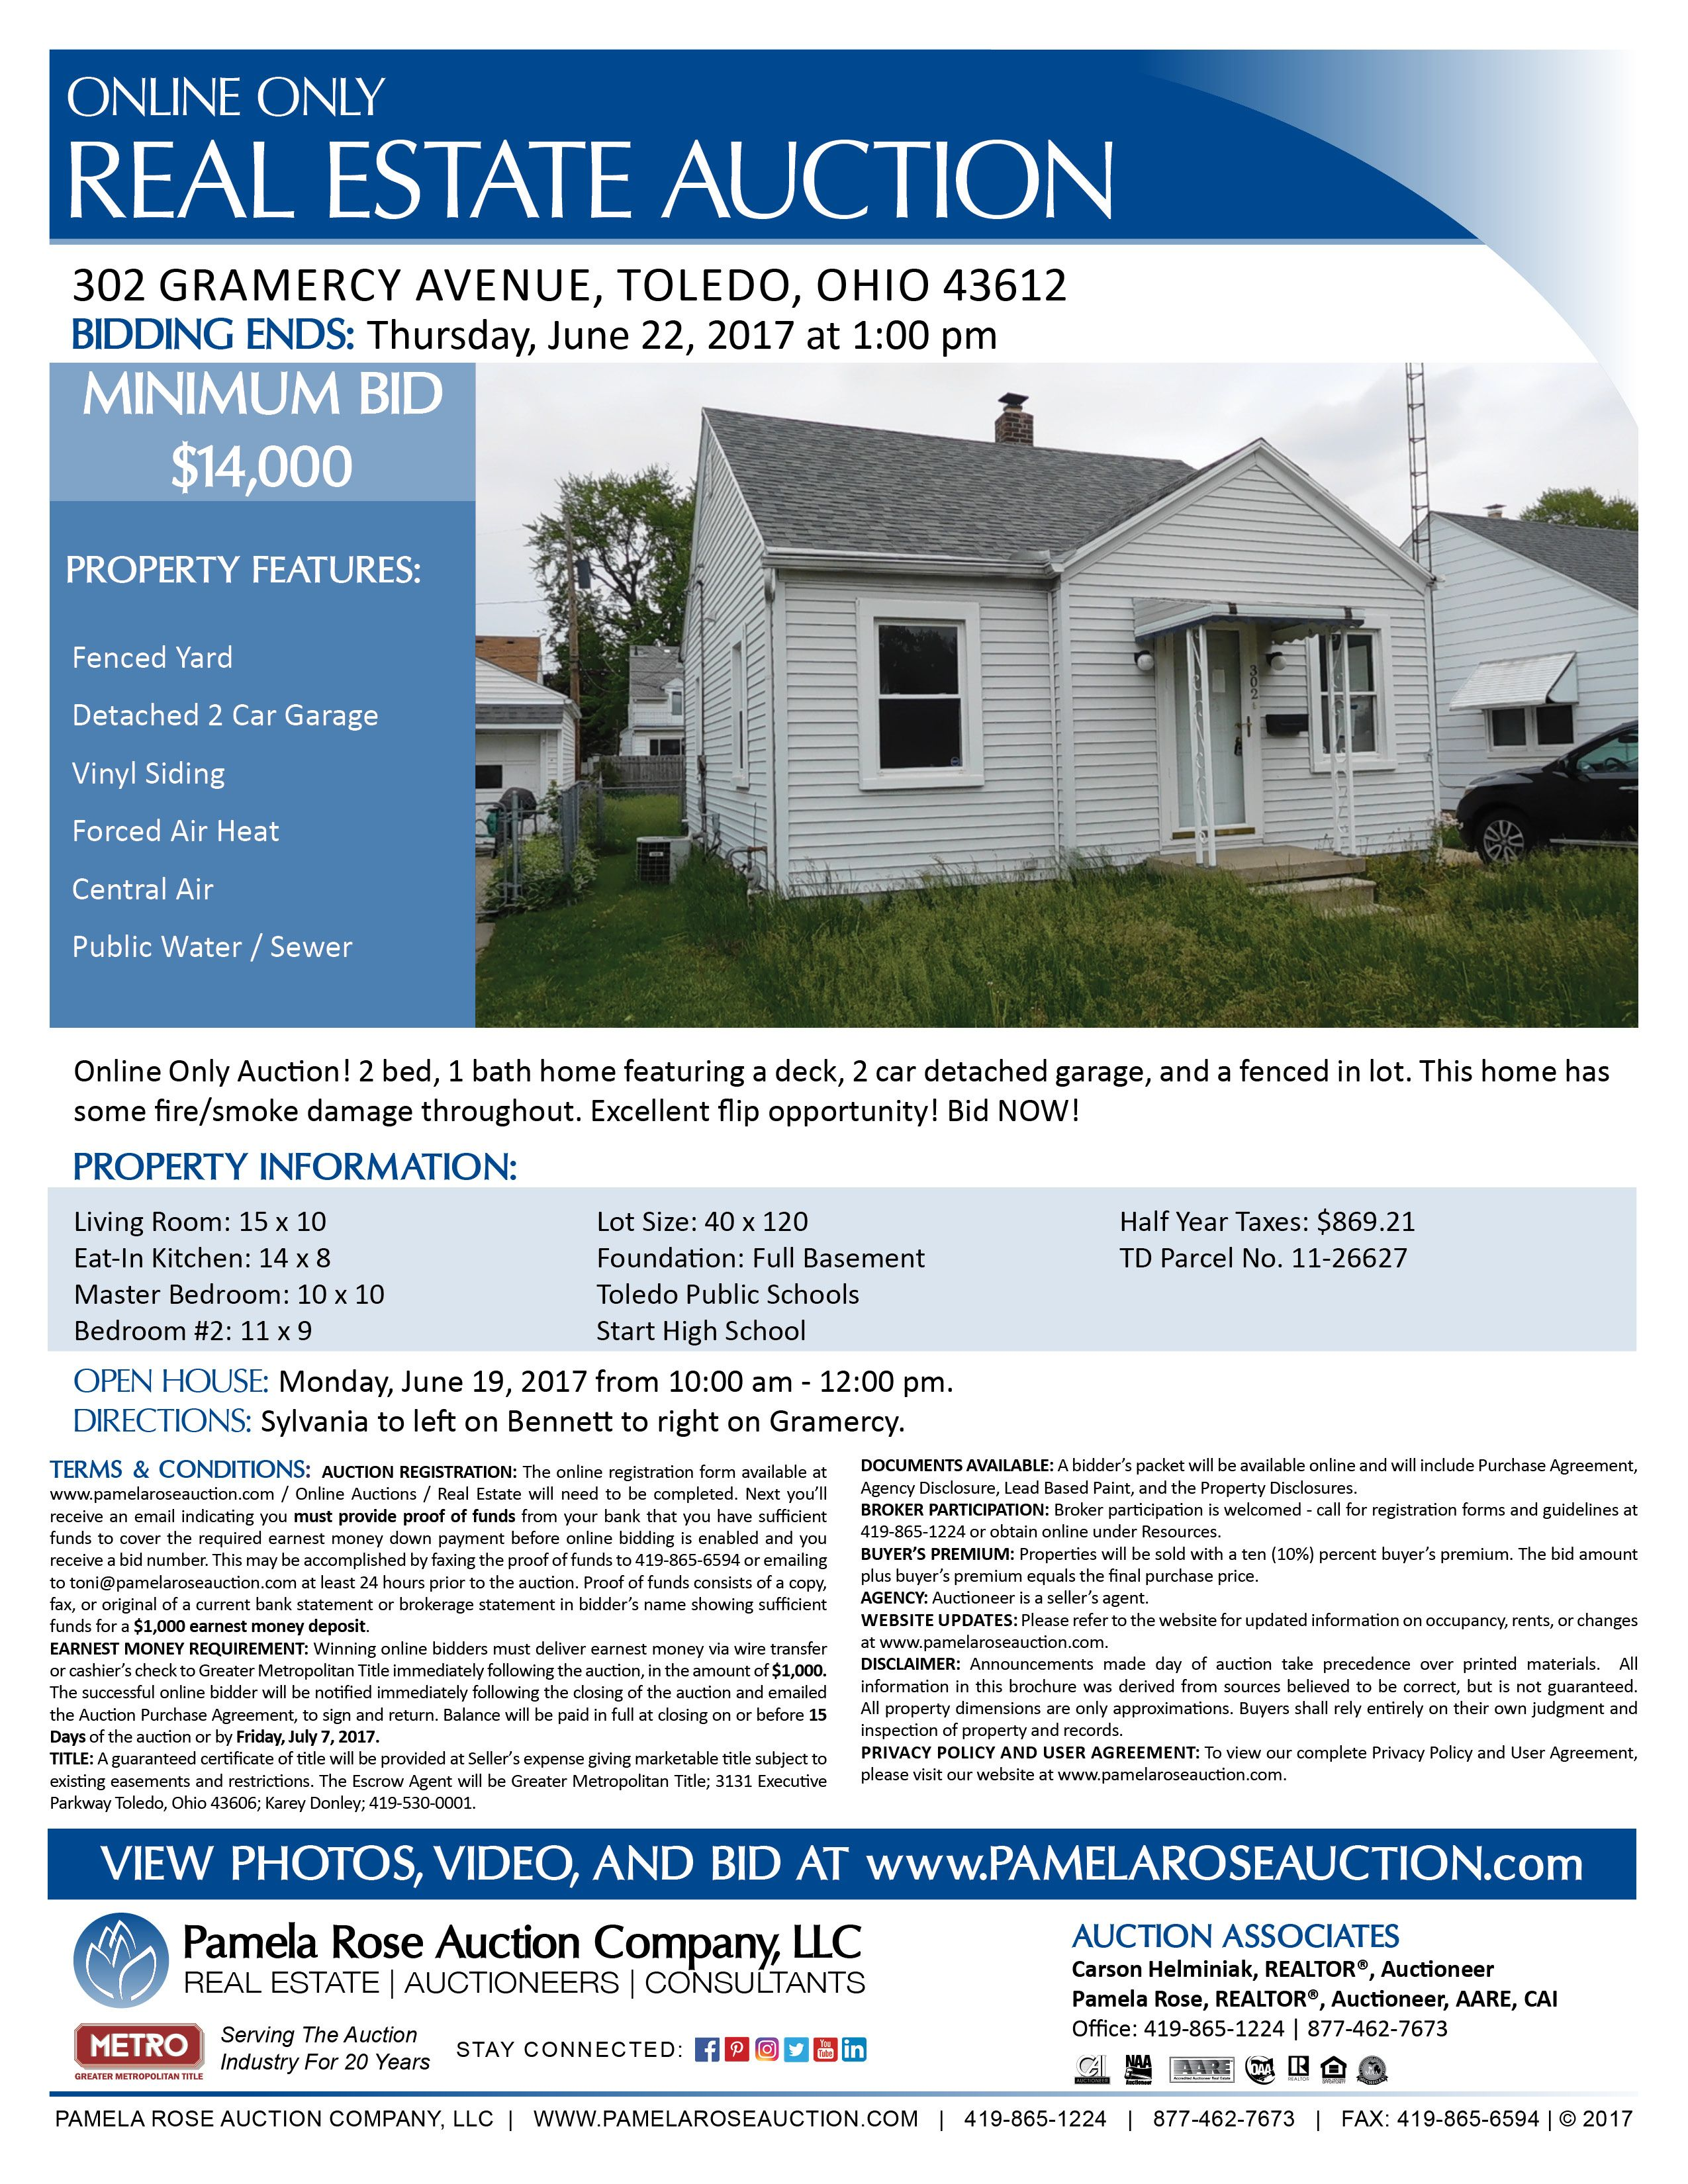 Investment Opportunity At Auction Being Sold Online Only At 302